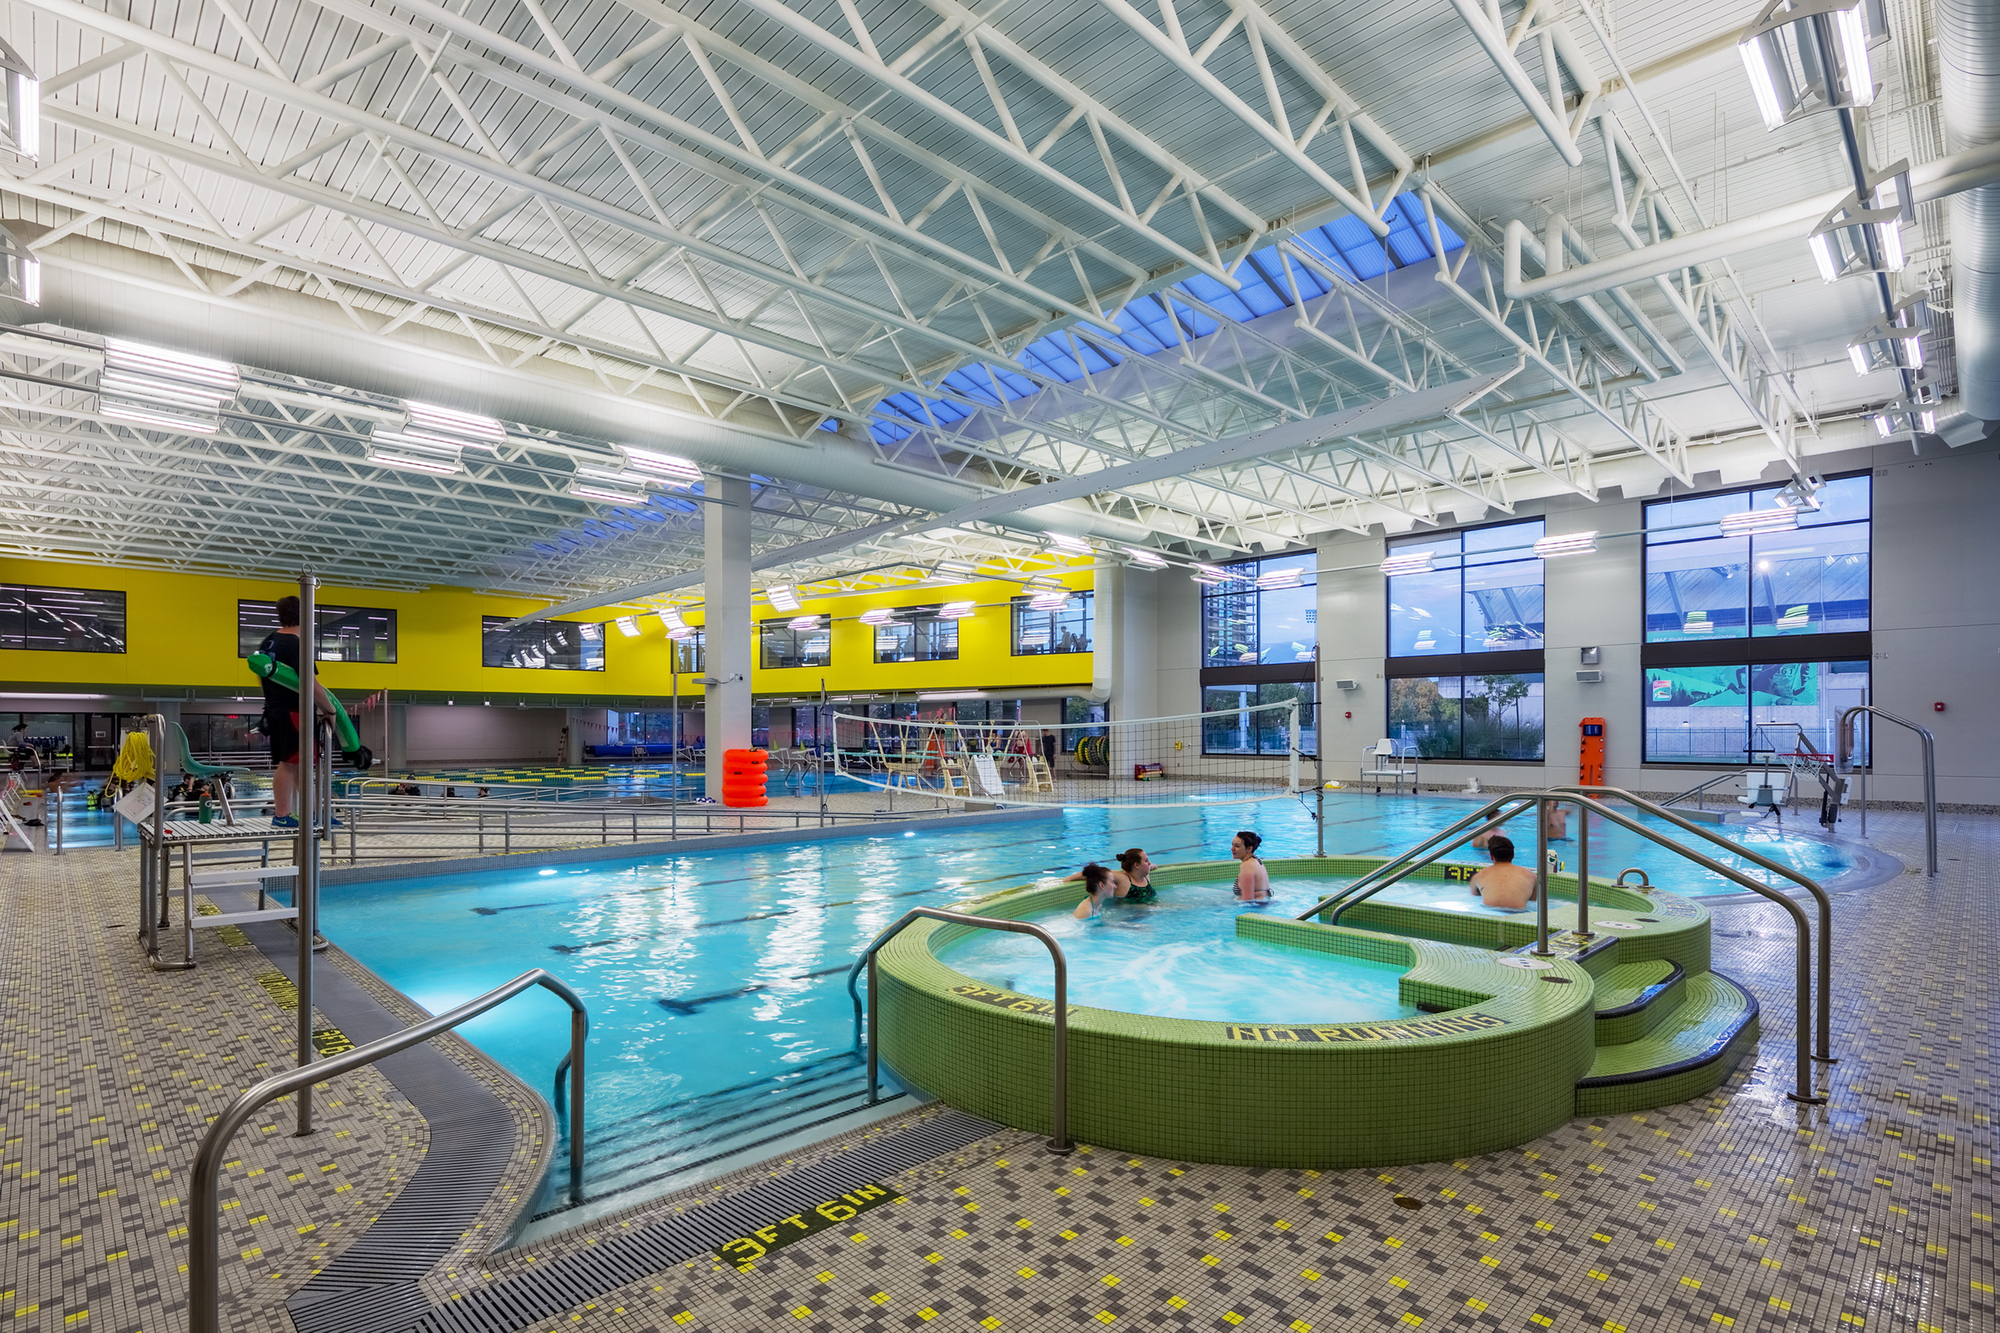 Swimming Pool Expansion : Gallery of student recreation center expansion and